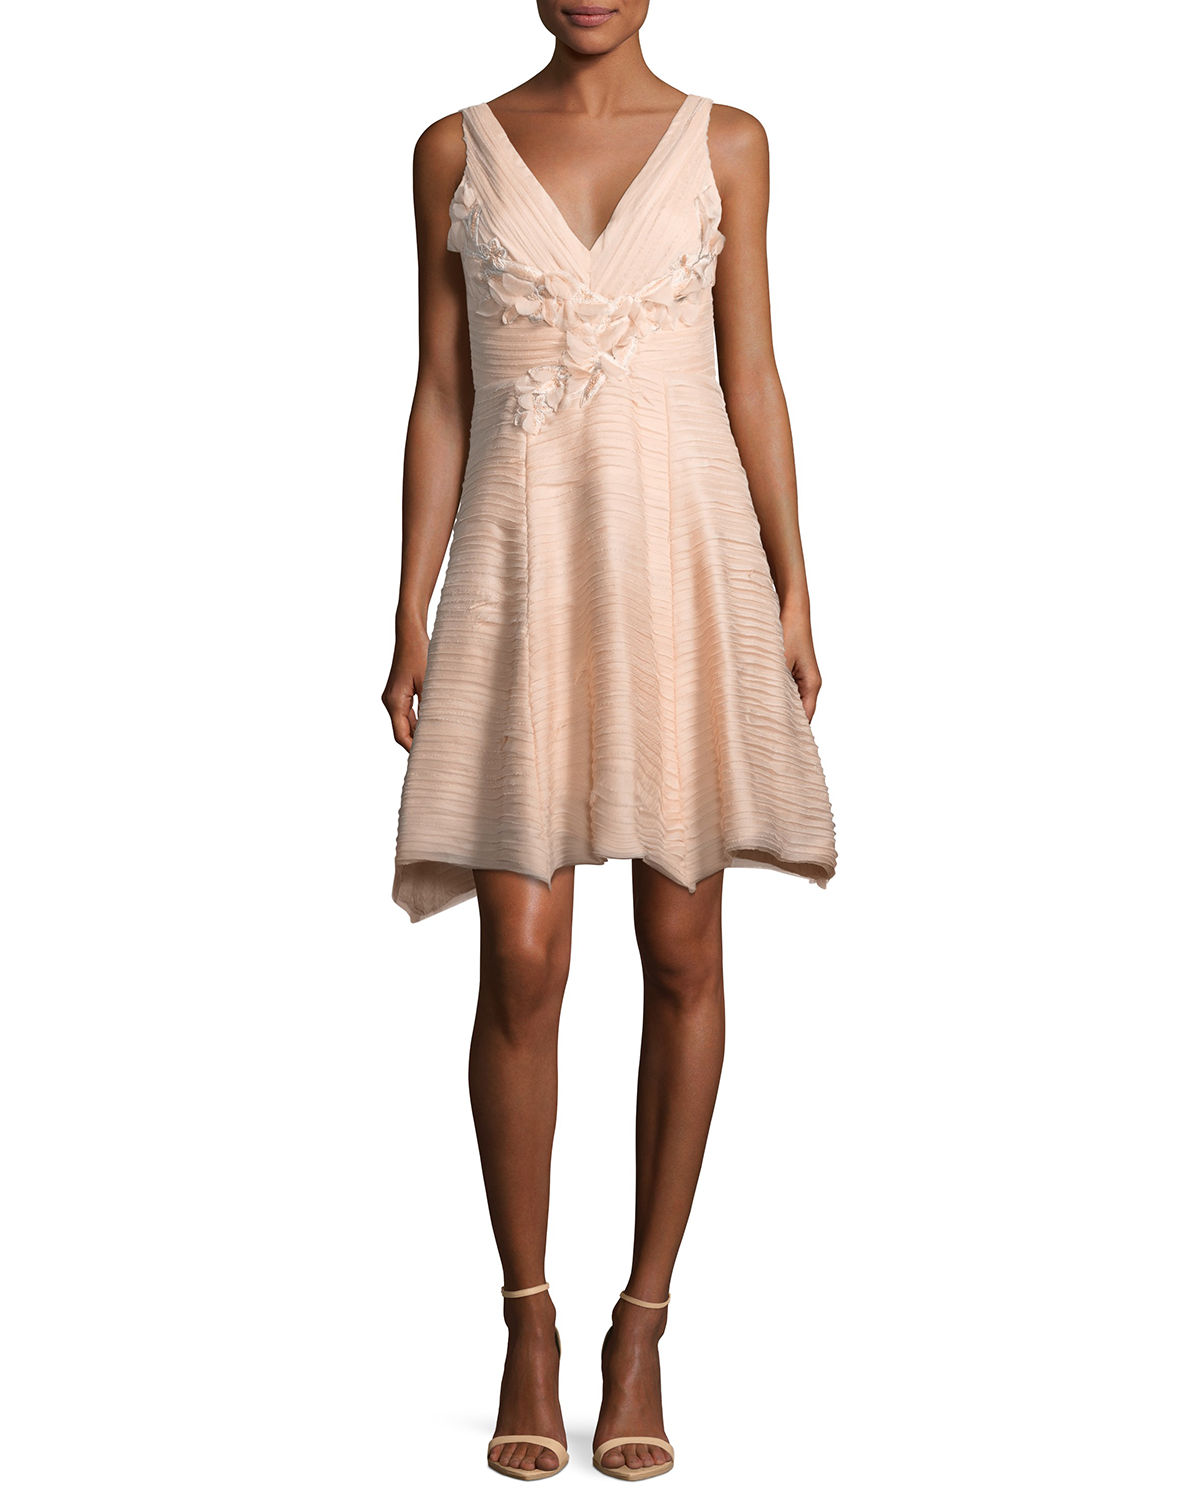 Sleeveless V-Neck Crinkled Chiffon Cocktail Dress